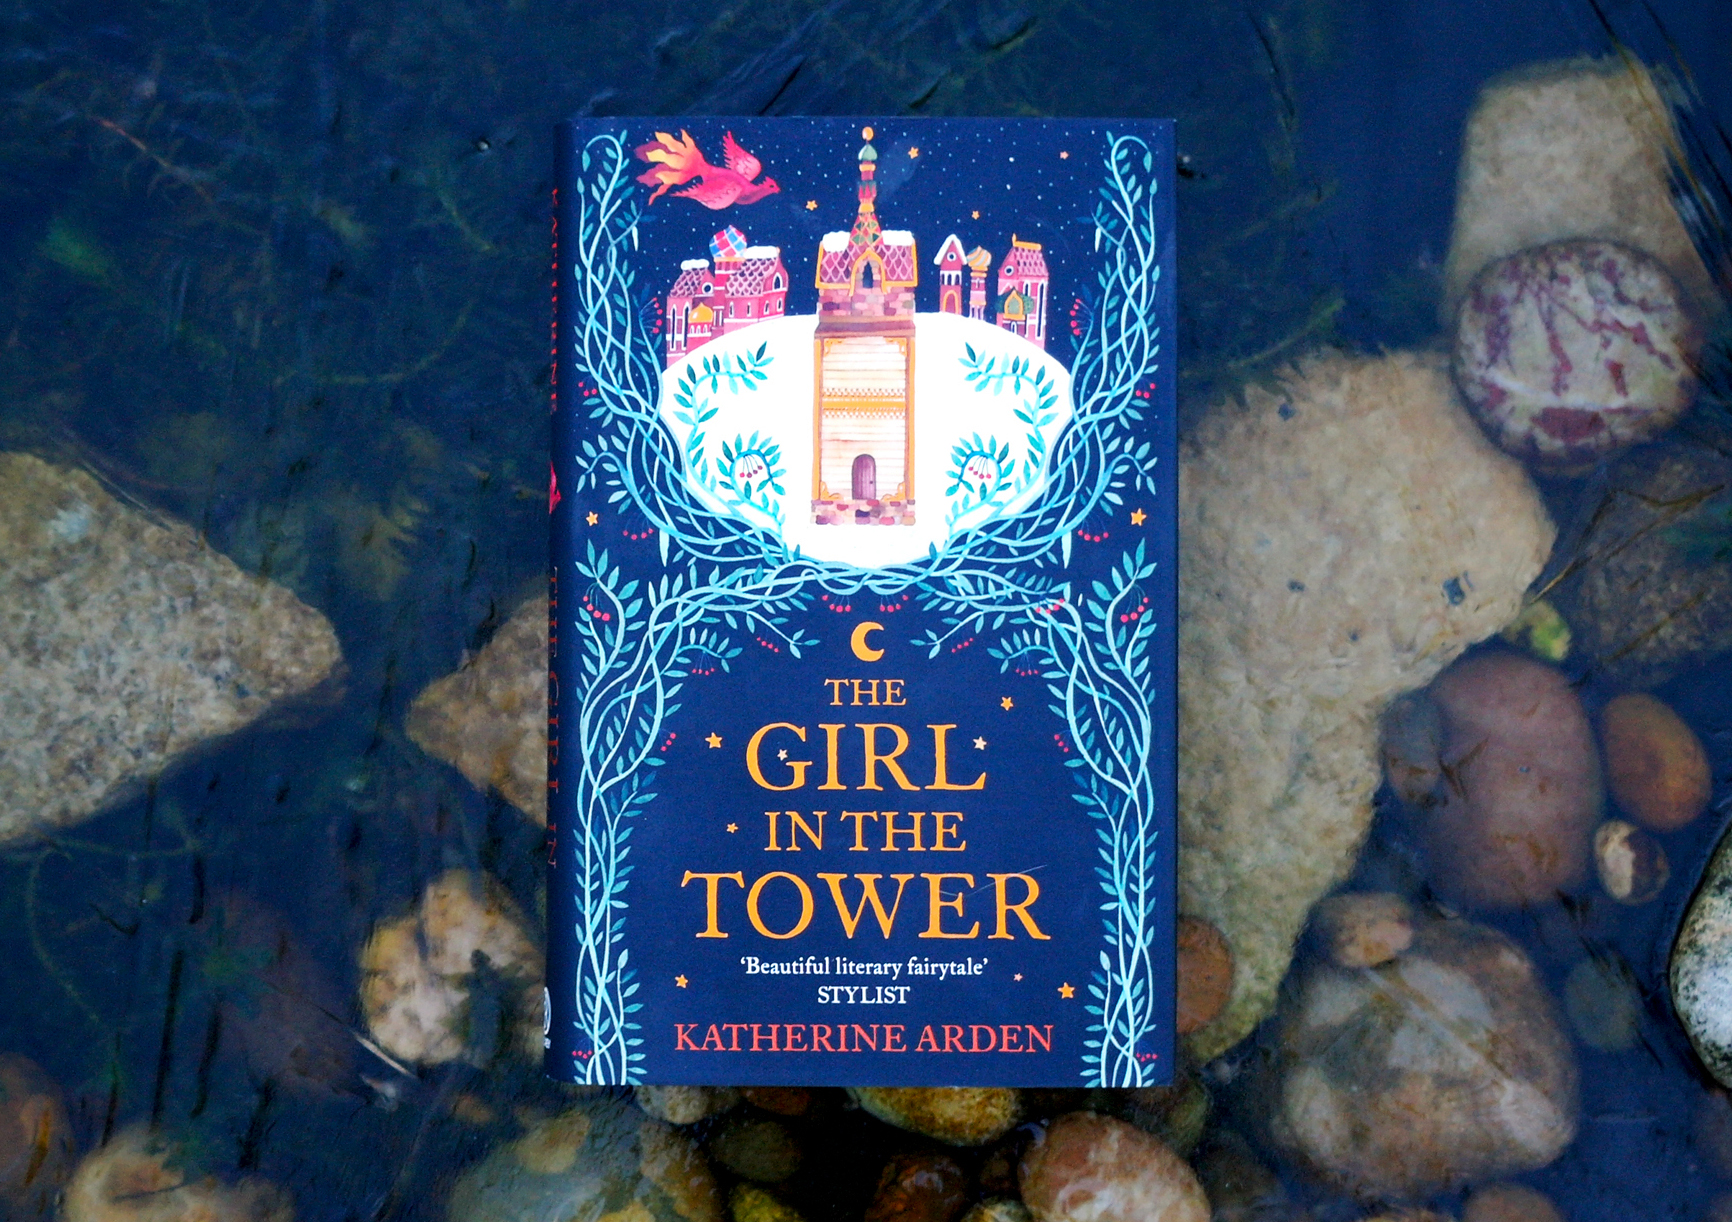 The Girl in the Tower by Katherine Arden. Book cover. Book review.